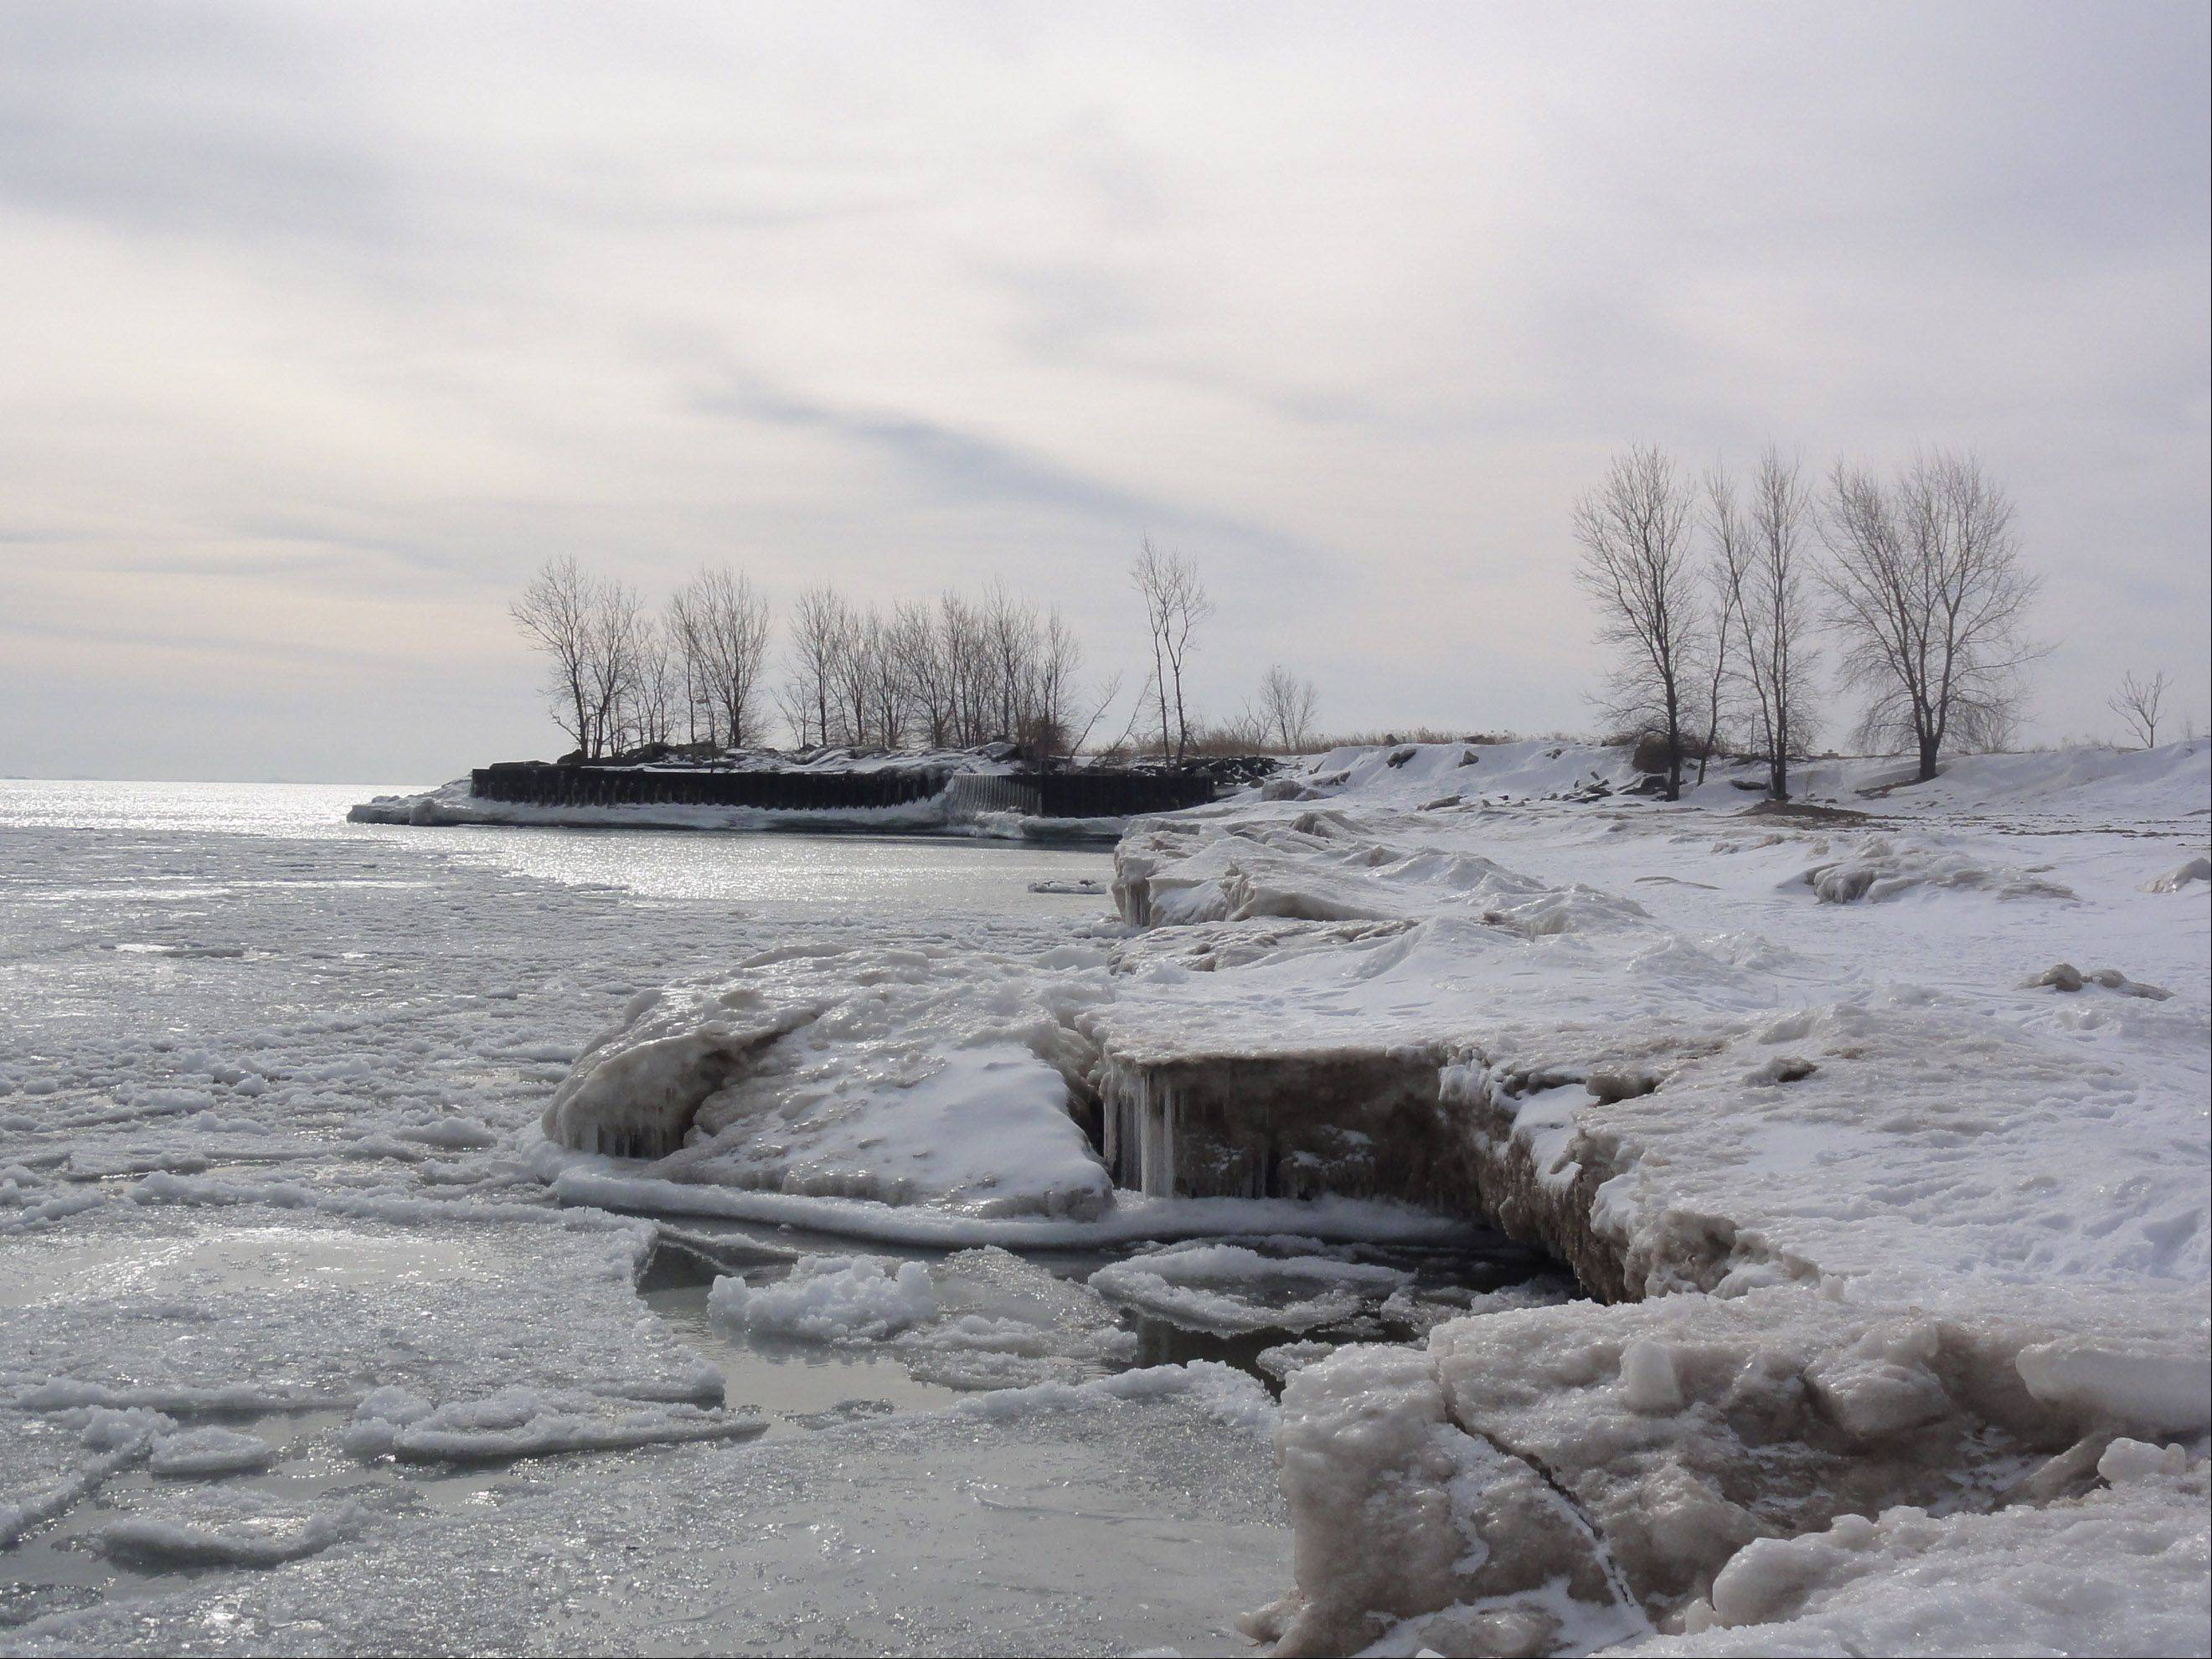 I took this photo on winter trip into Chicago with the family. This was near Northerly Island. I had never been to beach in winter and I was amazed by the beauty of it.